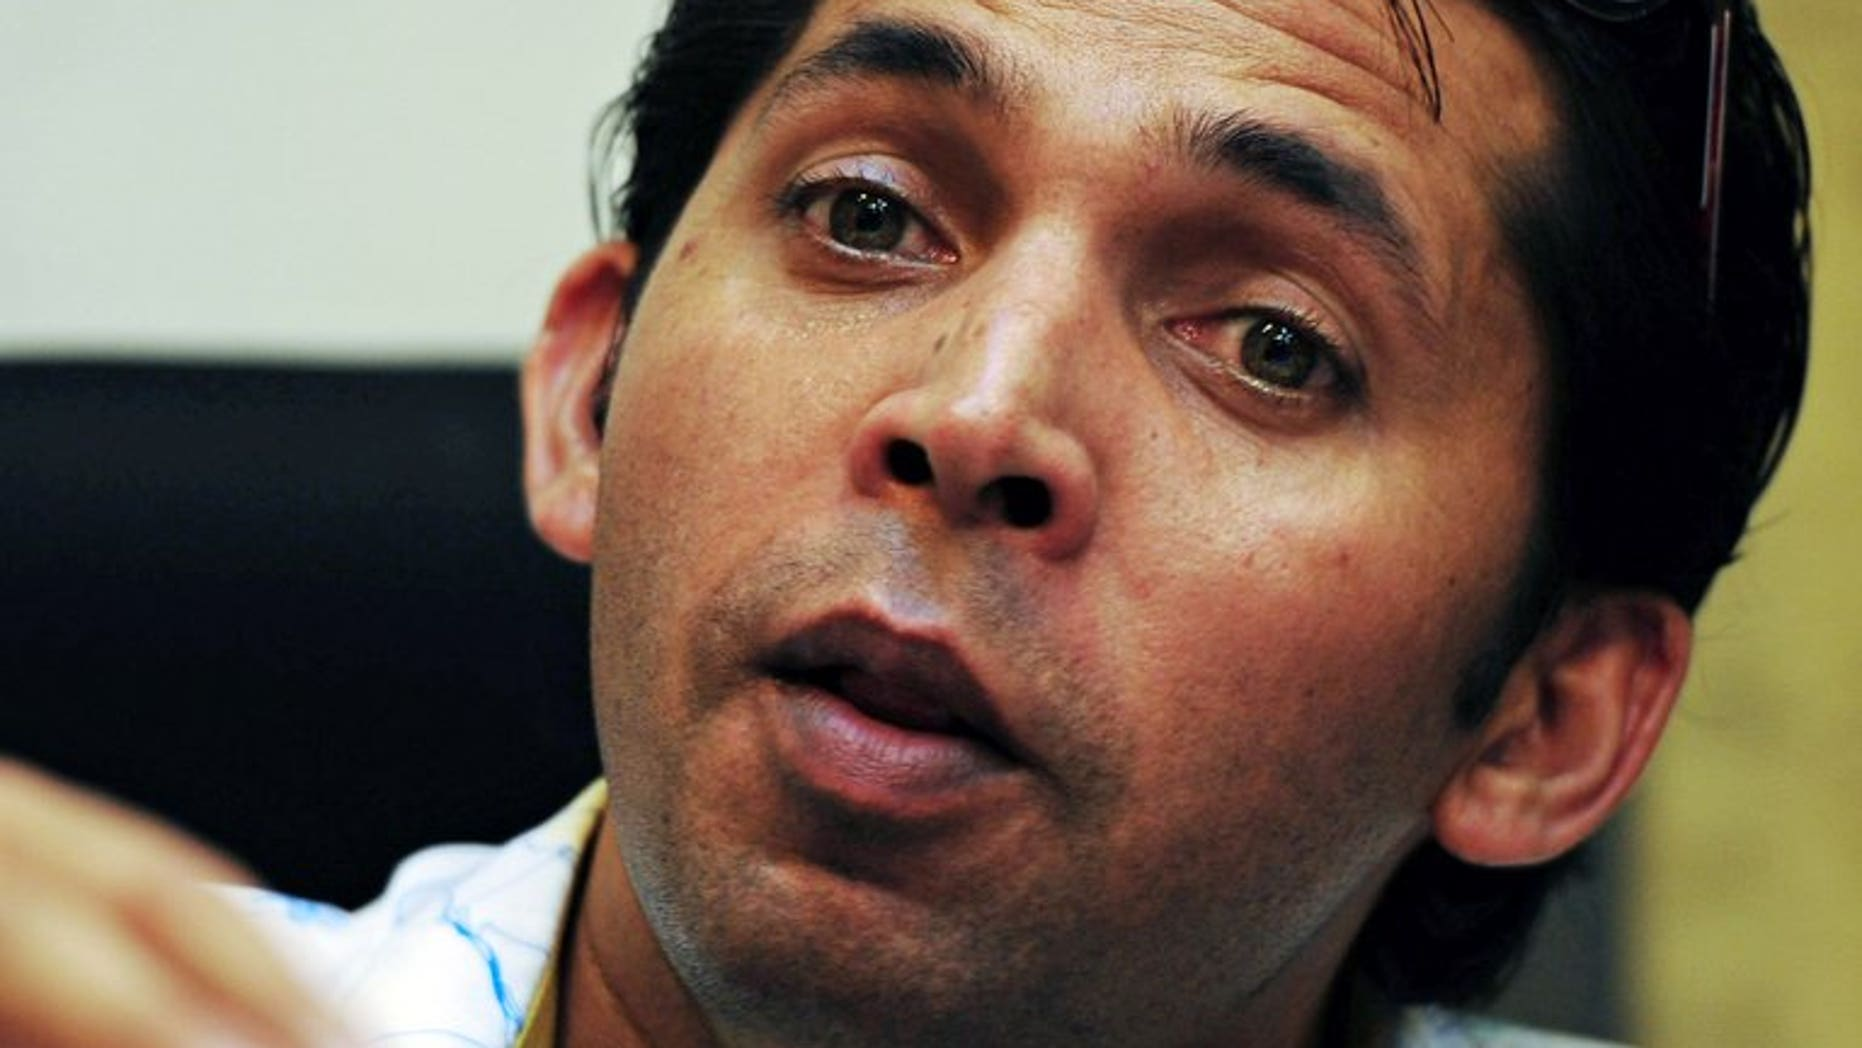 Mohammad Asif speaks during a news conference in Karachi on August 14. The banned Pakistan paceman on Monday spoke for the first time to the anti-corruption and vigilance wing of the cricket board as an initial step towards reviving his career.